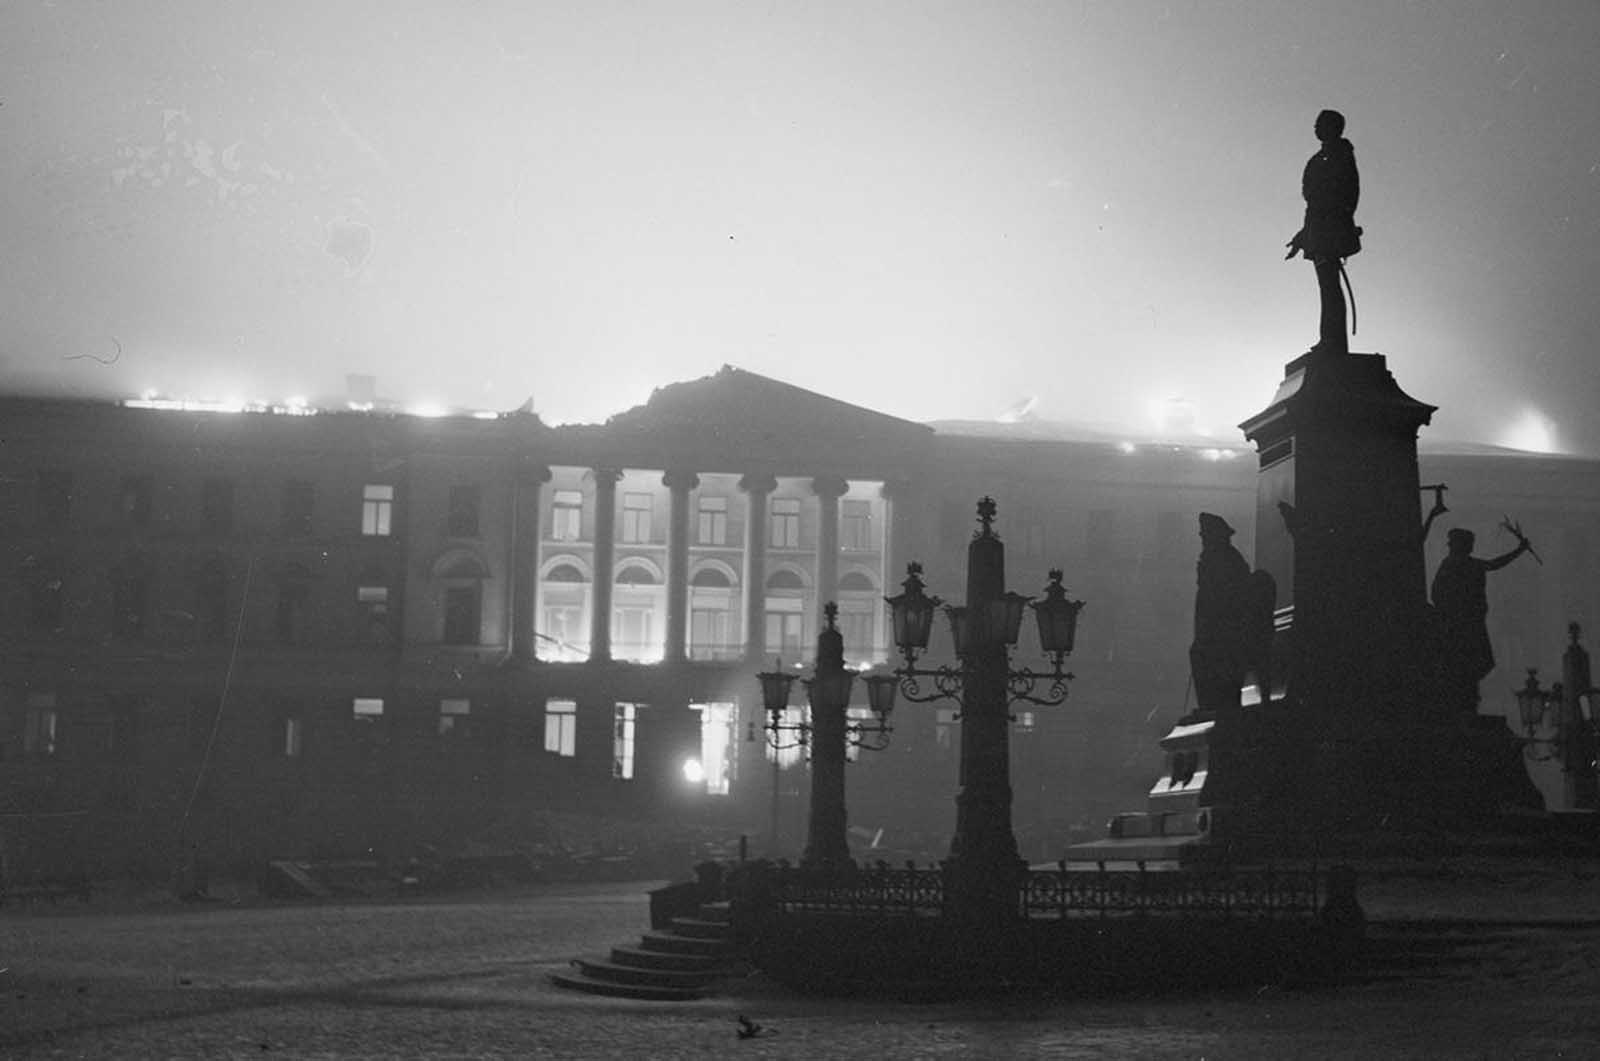 The bombing of Helsinki. The main building of Helsinki University, on Senate Square, burns during the night.